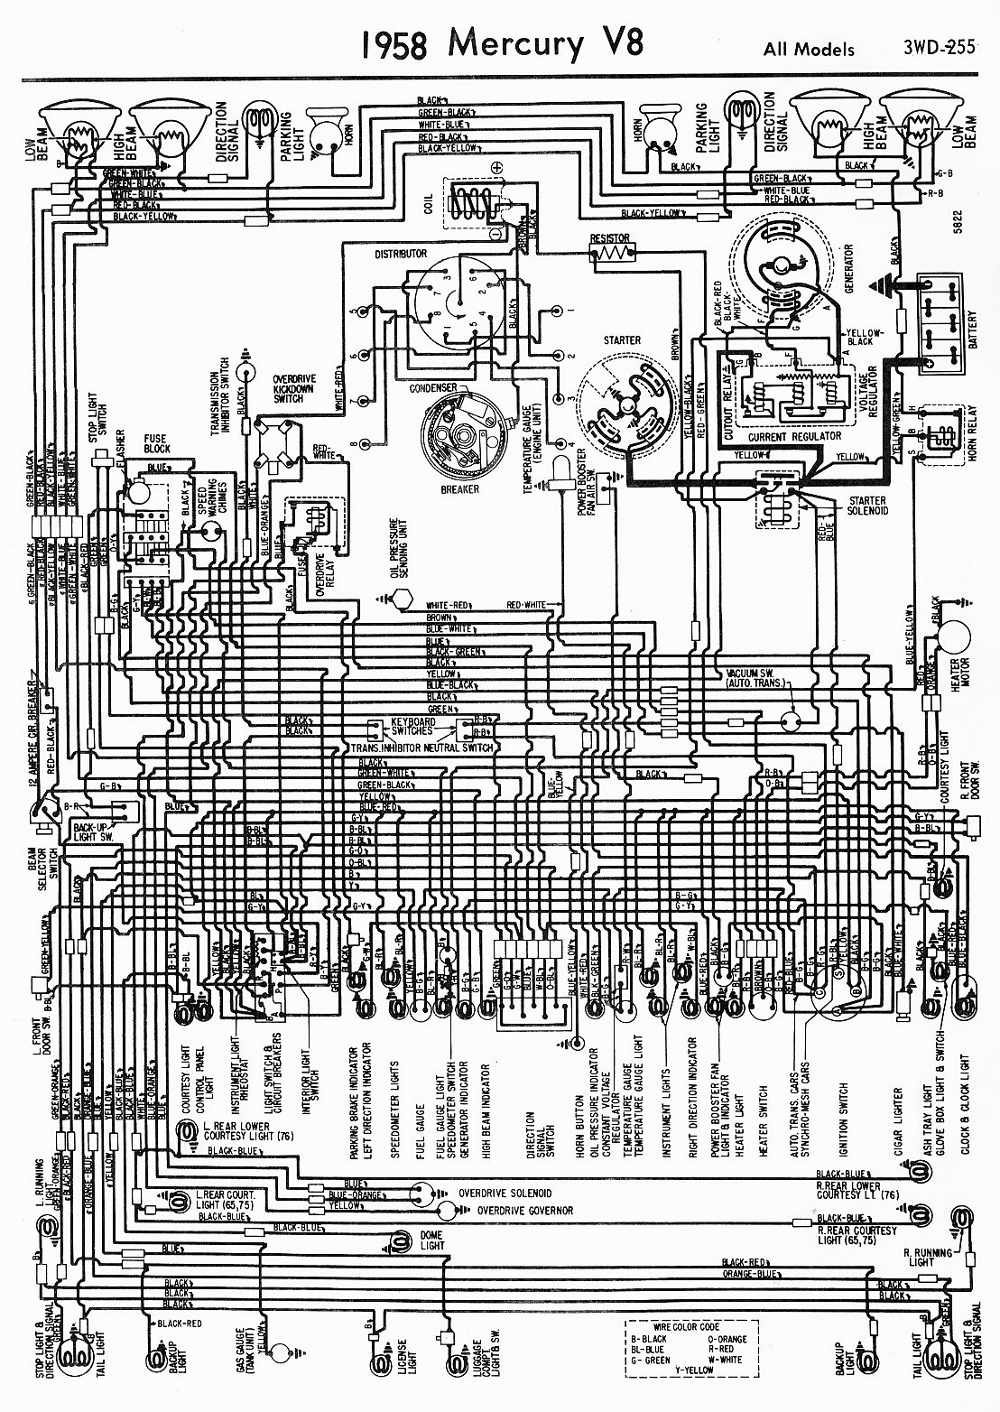 1958 chevy wiring diagram diagram  dish work wiring diagrams full version hd quality wiring 1958 chevrolet wiring diagram diagram  dish work wiring diagrams full